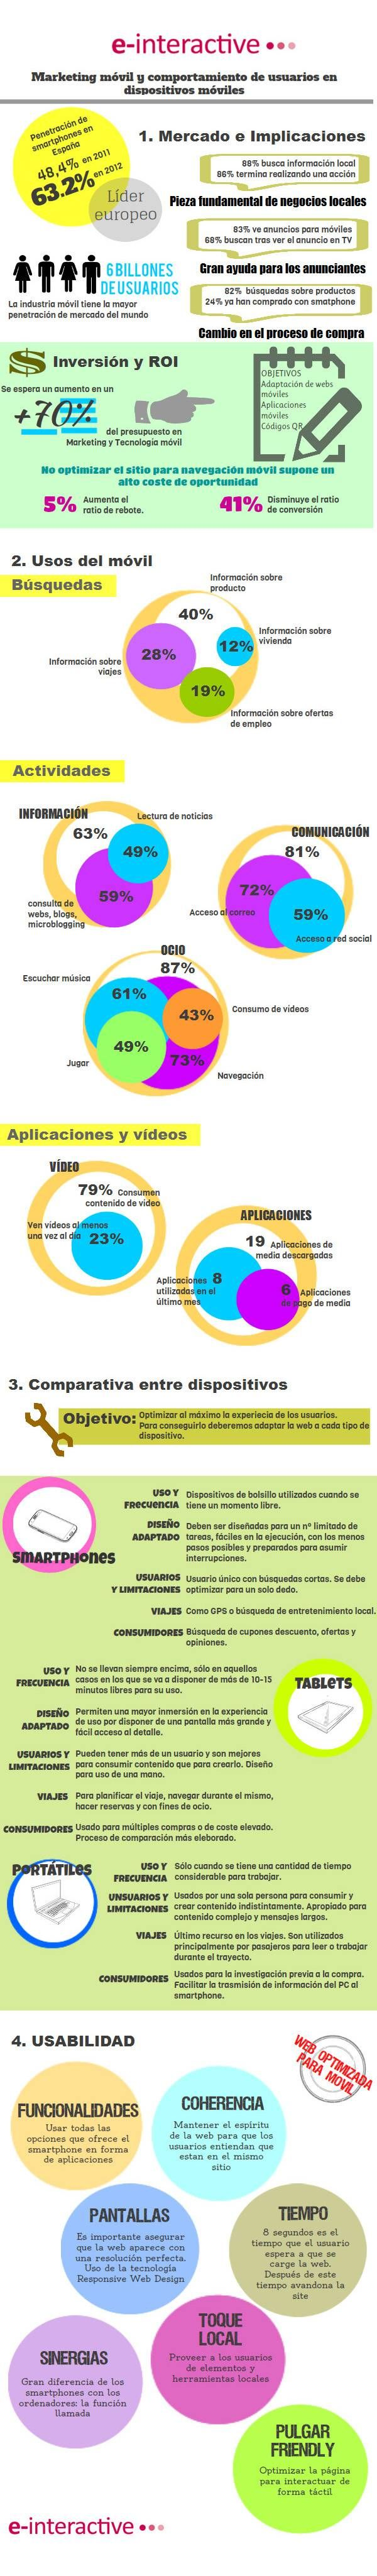 Marketing Móvil: estadísticas, claves y tendencias en el uso de dispositivos móviles